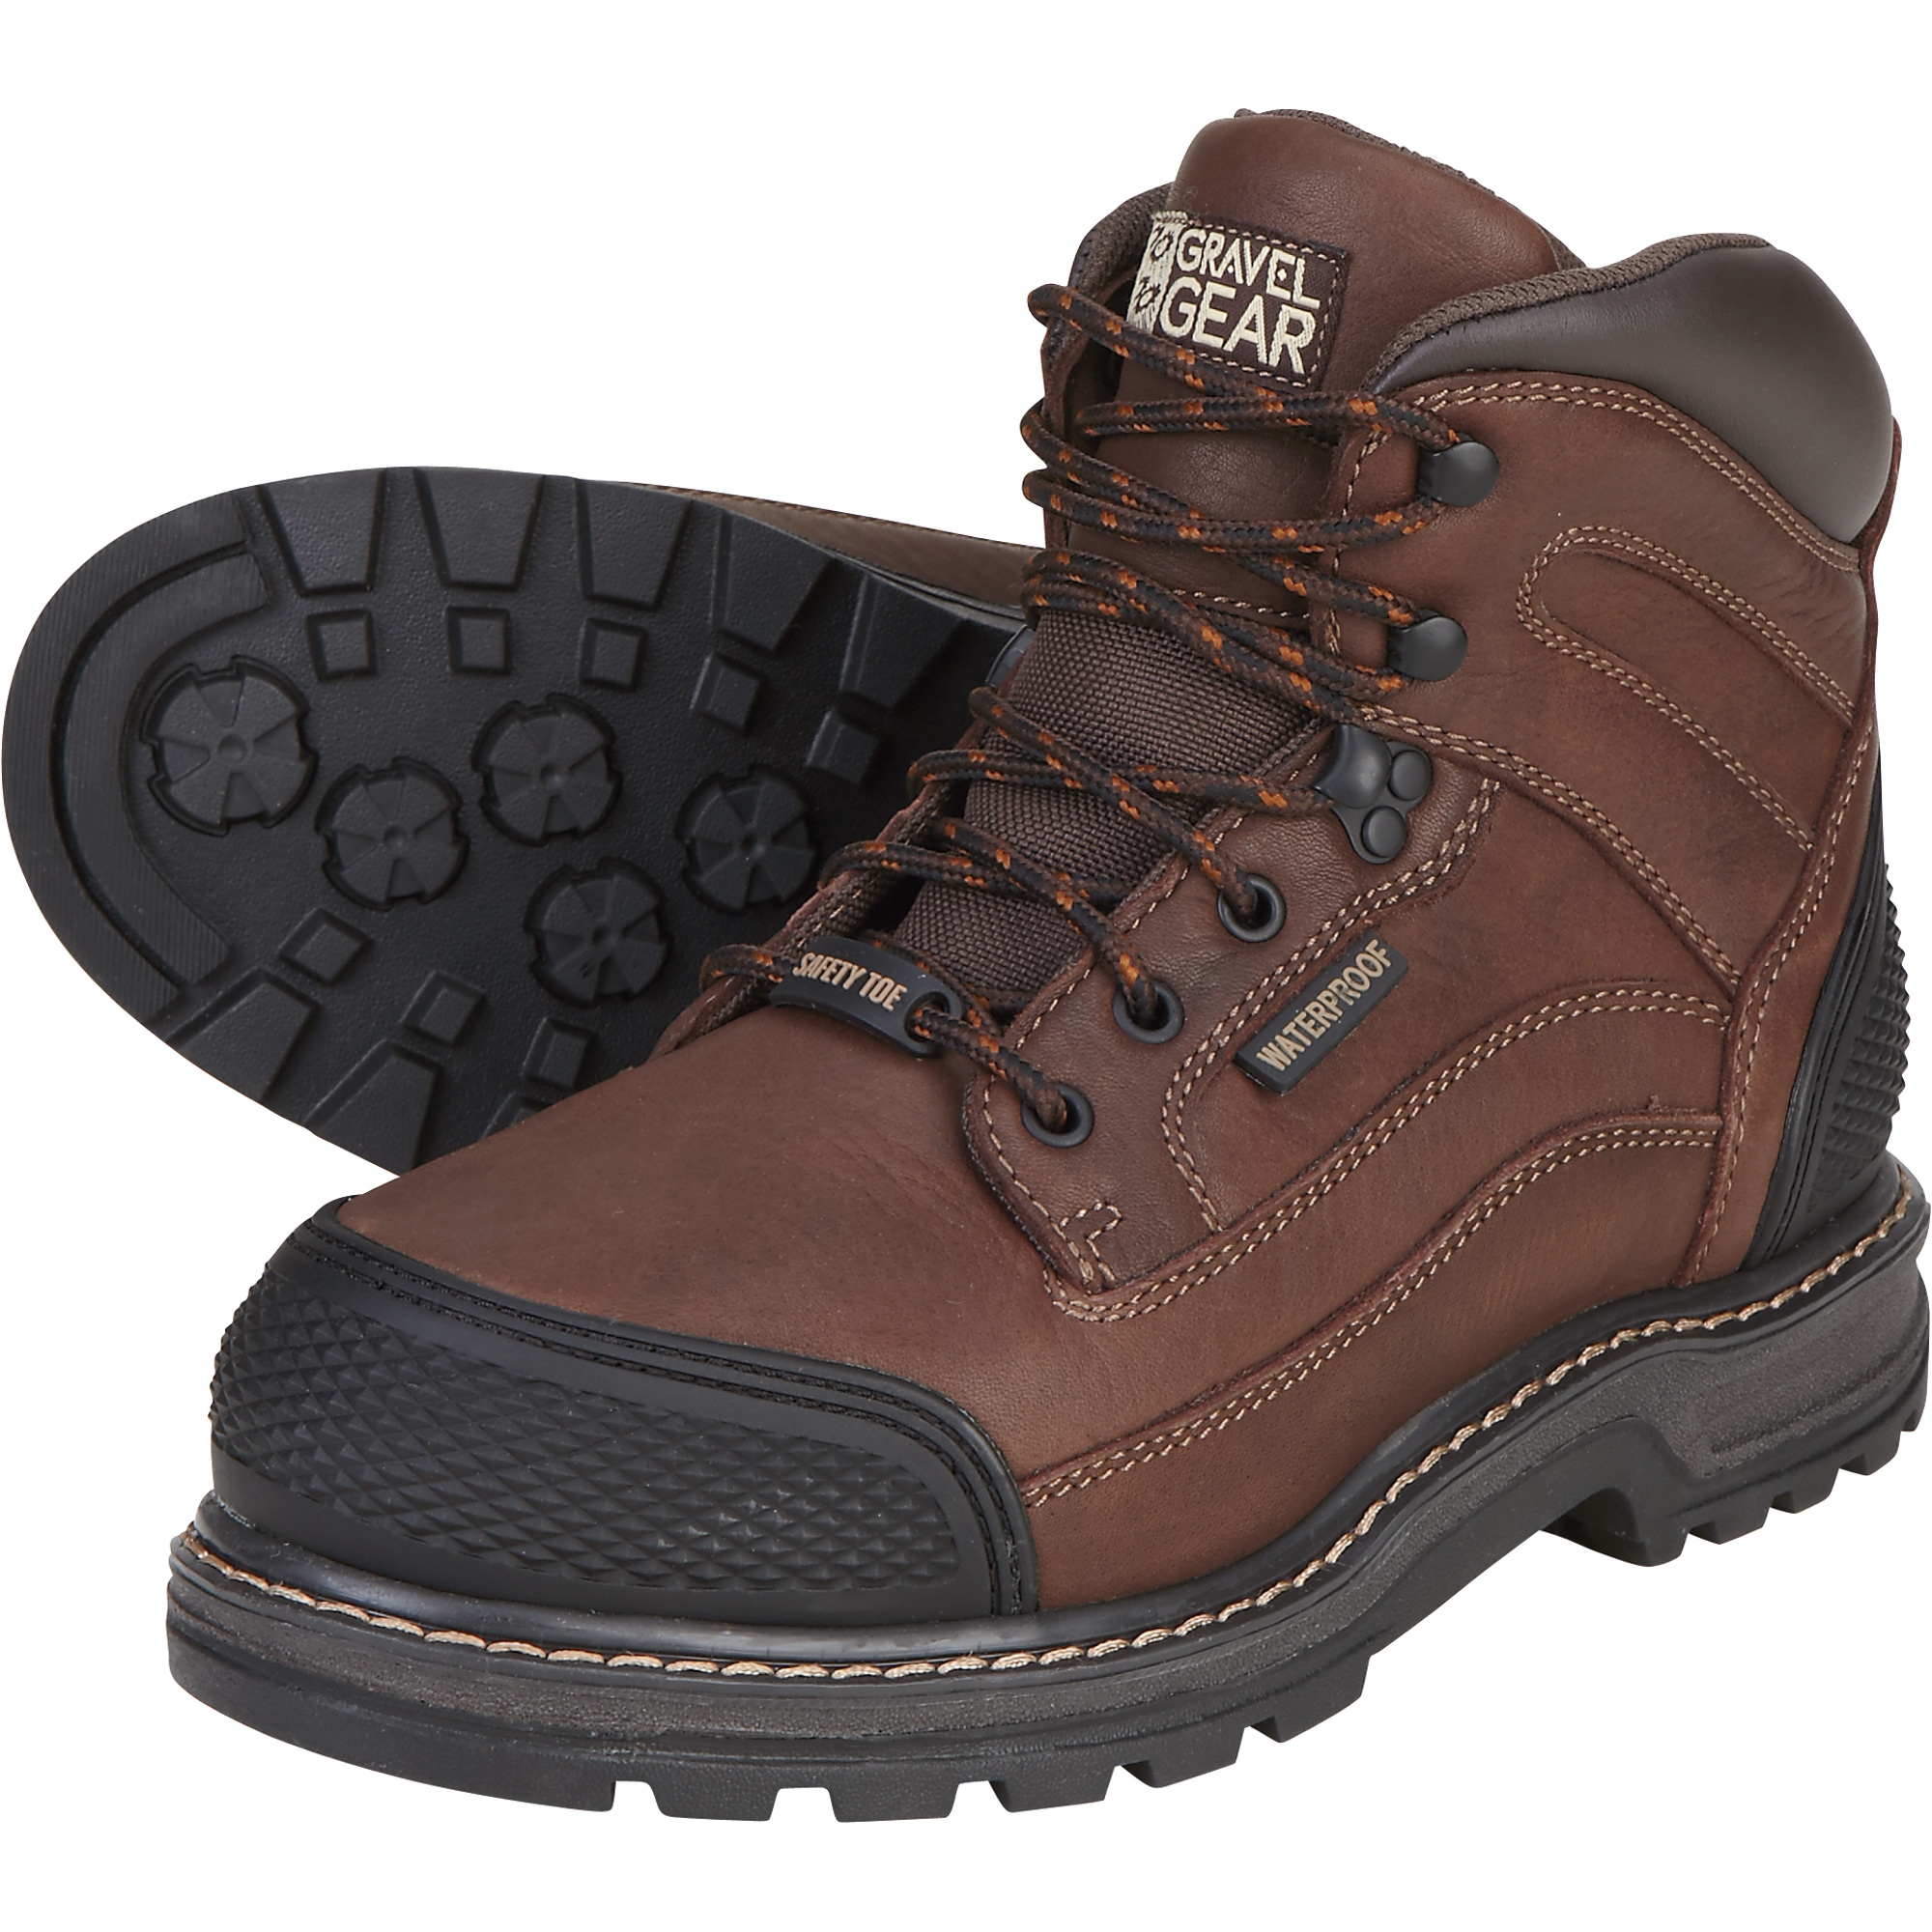 Waterproof Steel Toe Work Boots yUDQkKPS